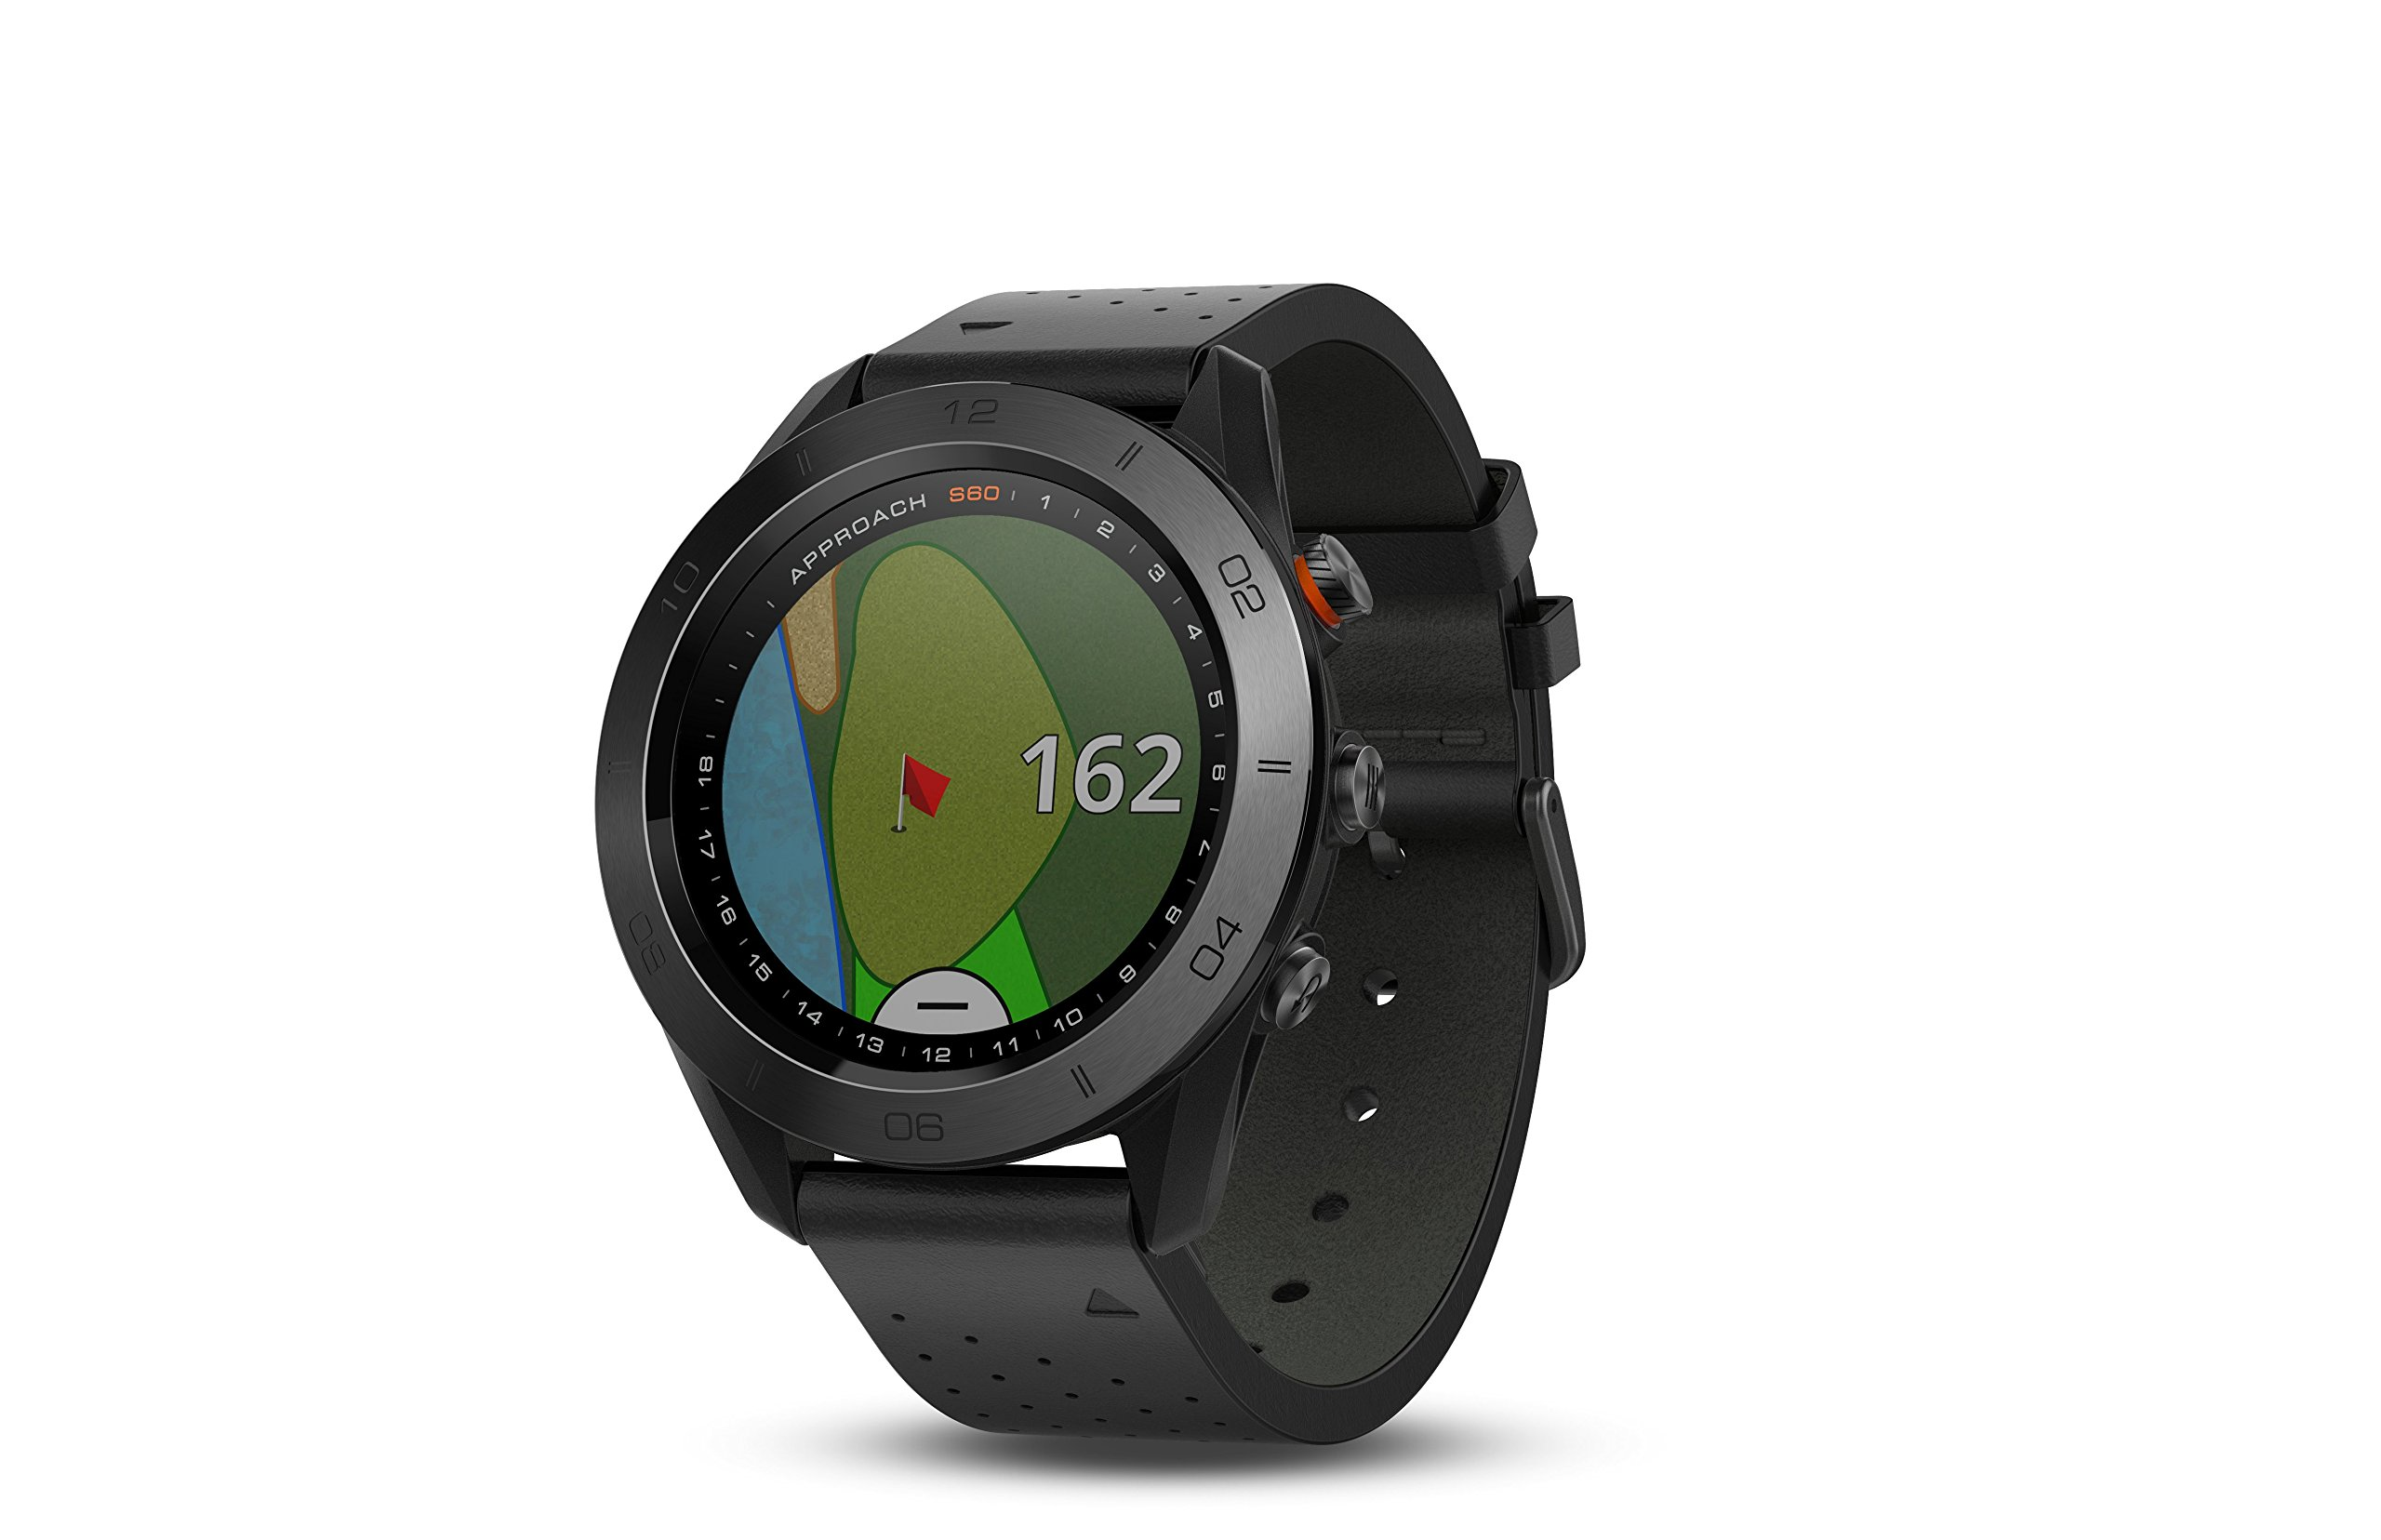 Garmin Approach S60, Premium GPS Golf Watch with Touchscreen Display and Full Color CourseView Mapping, Black w/Leather Band by Garmin